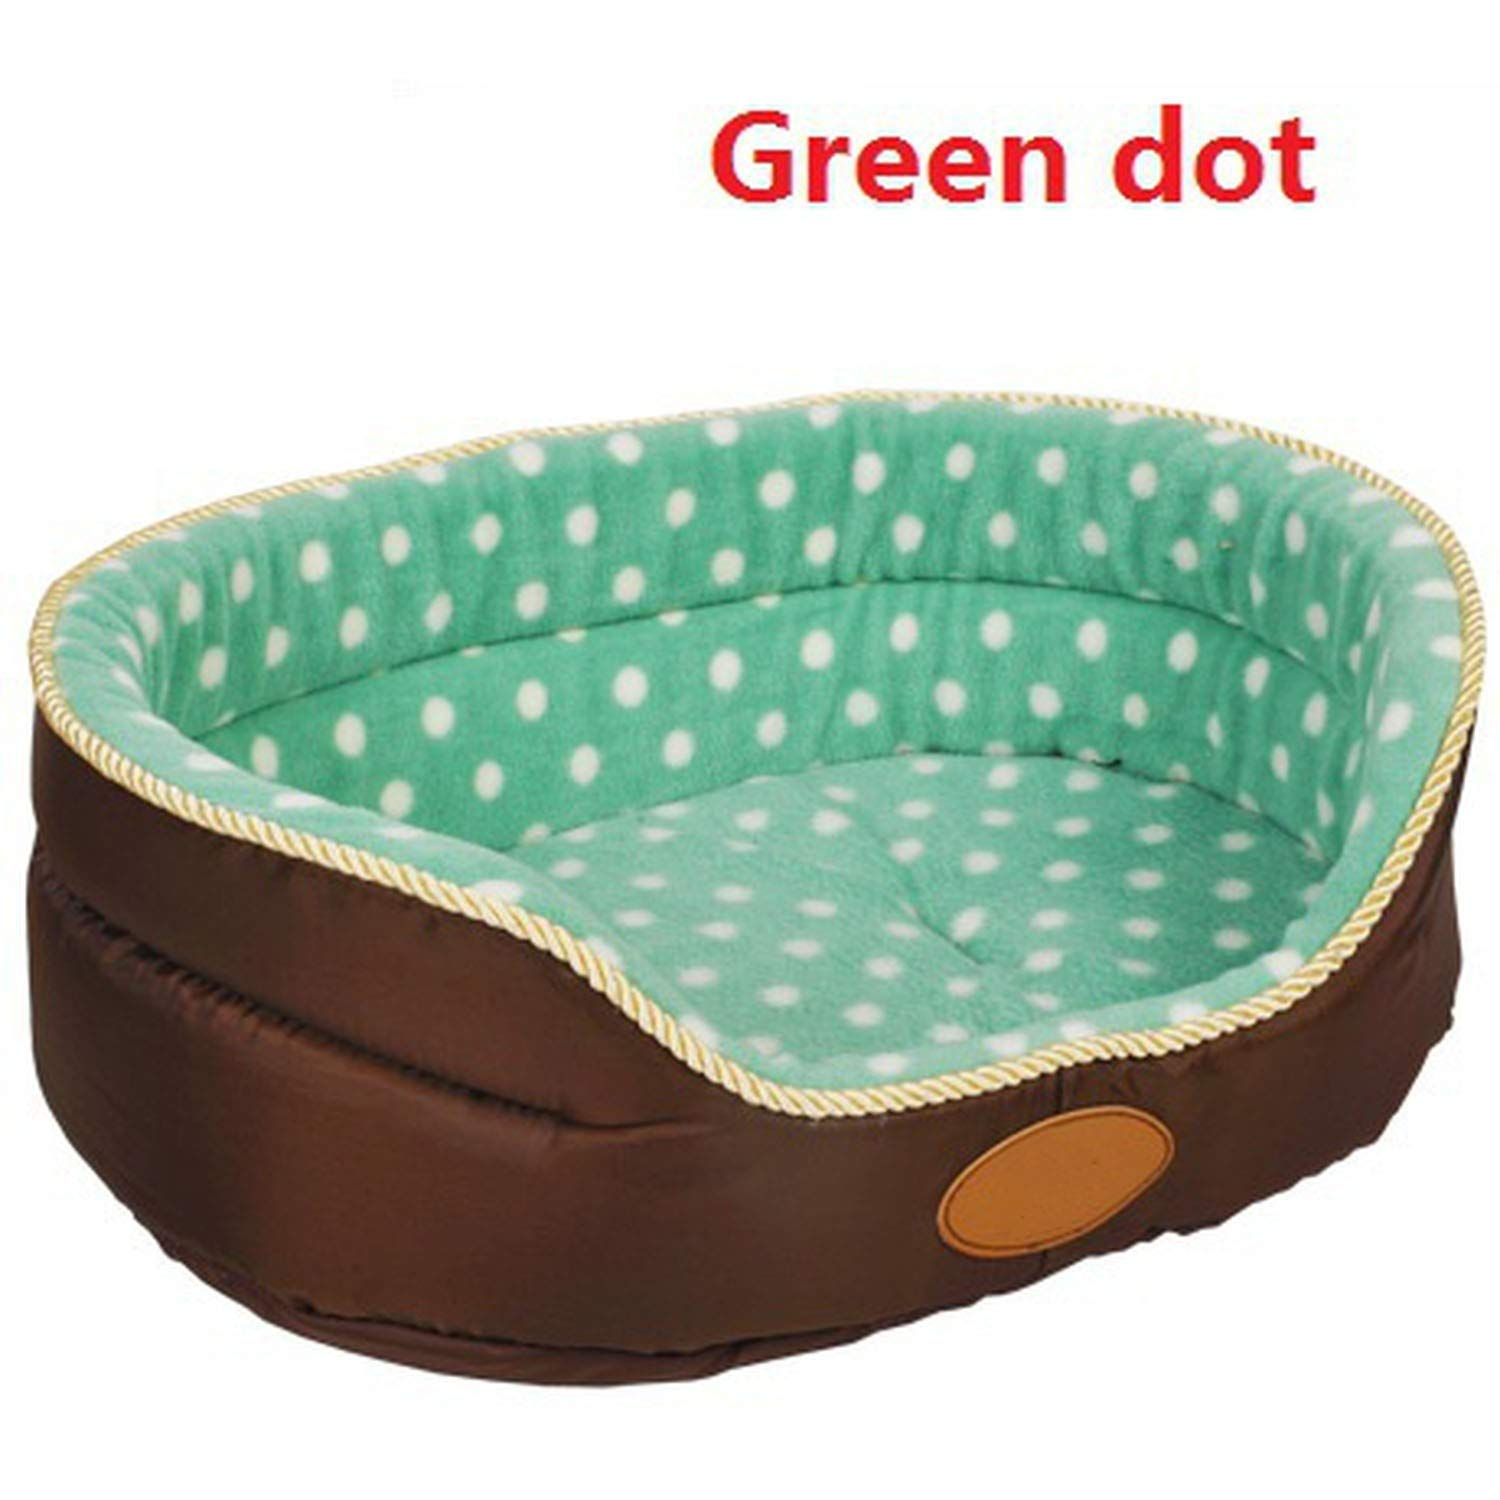 Green dot bed L 80x70x22cmBig Size Extra Large Dog Bed House Sofa Two Sides Congreenible All Seasons Kennel Soft Fleece Pet Dog Cat Warm Bed S M L, Green dot Bed,L 80x70x22cm